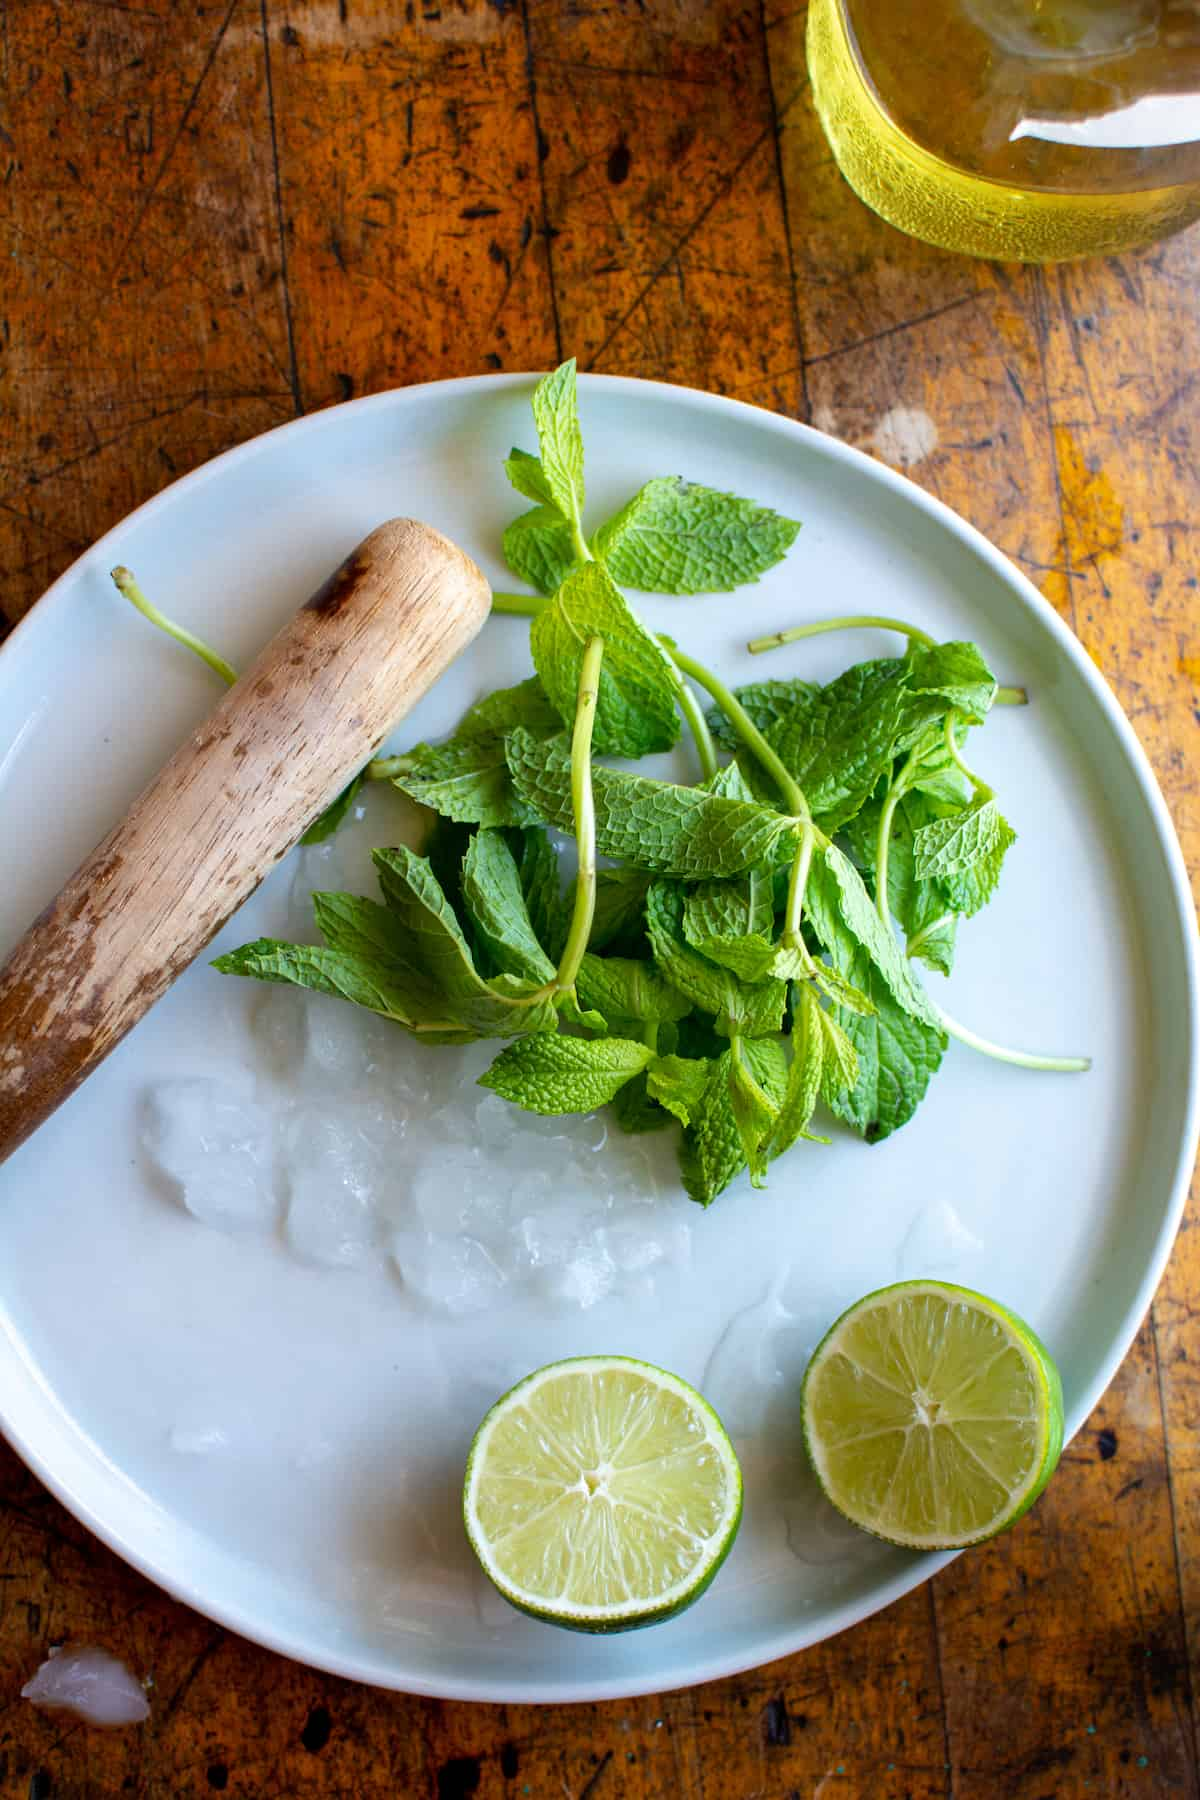 A white plate with a wood muddler, sprigs of fresh mint, and a lime cut in half on a wood table.